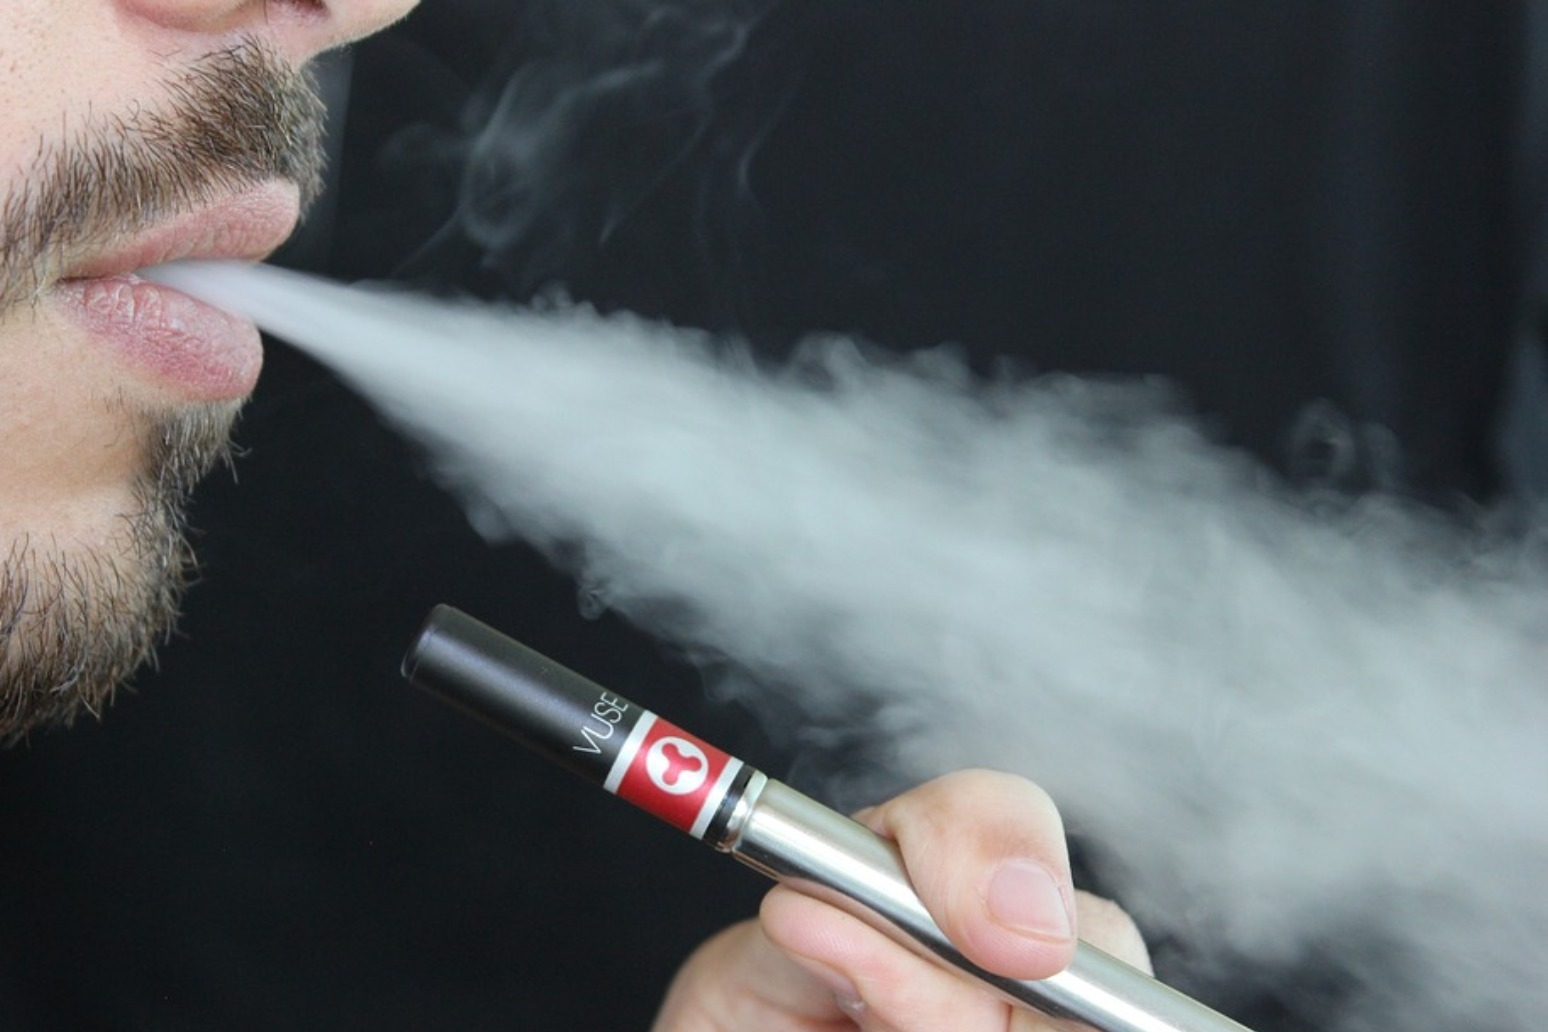 VAPING CREDITED WITH HELPING MORE THAN 50,000 PEOPLE QUIT SMOKING IN A YEAR